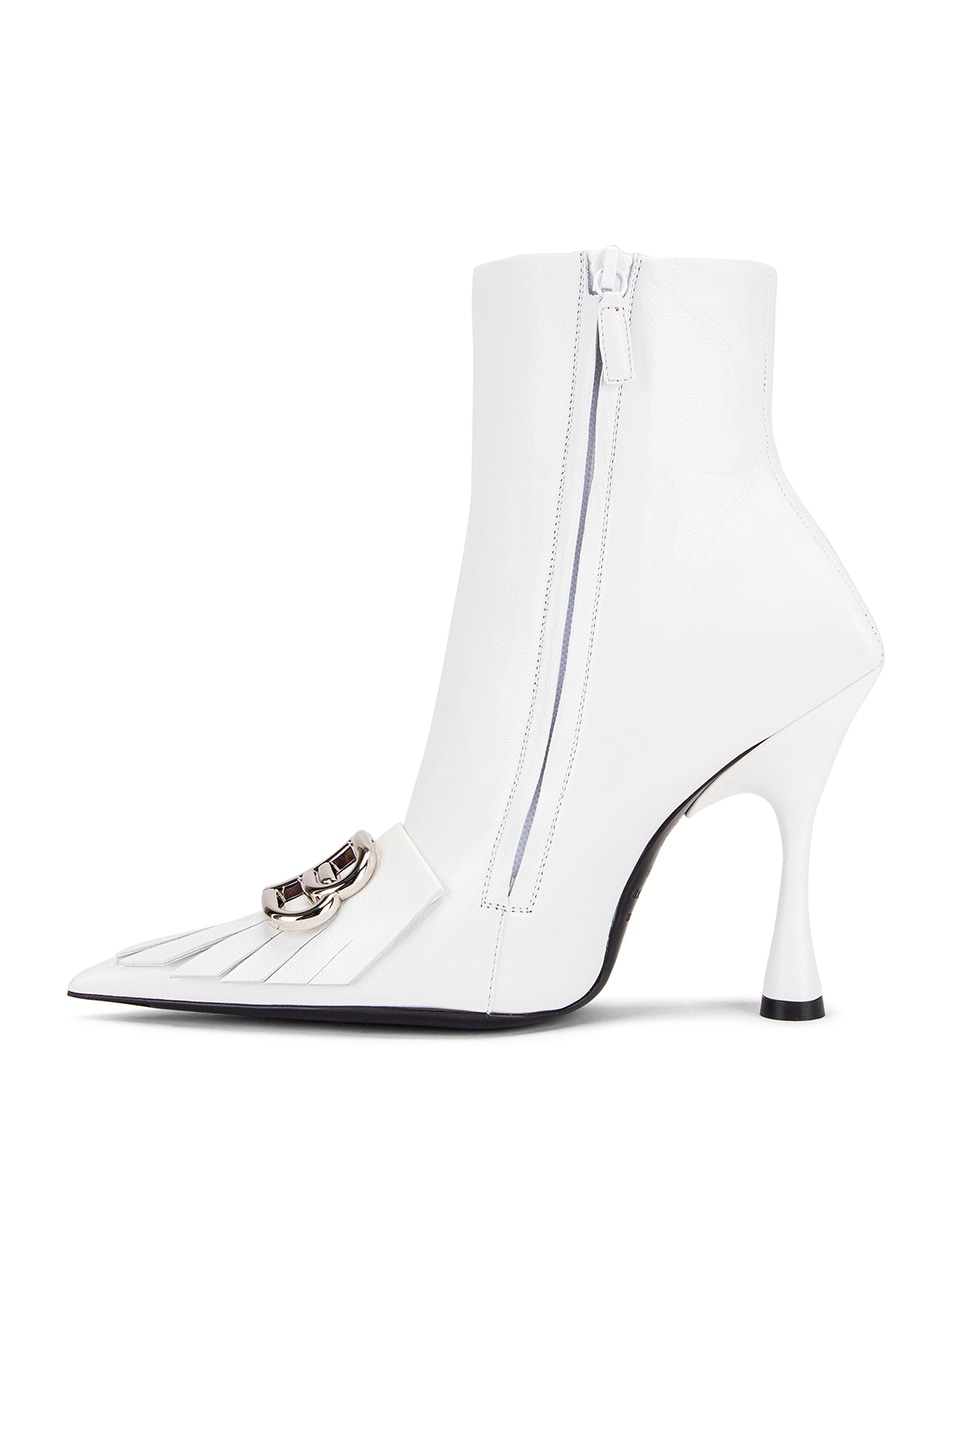 Image 5 of Balenciaga Fringe Knife Booties in White & Silver